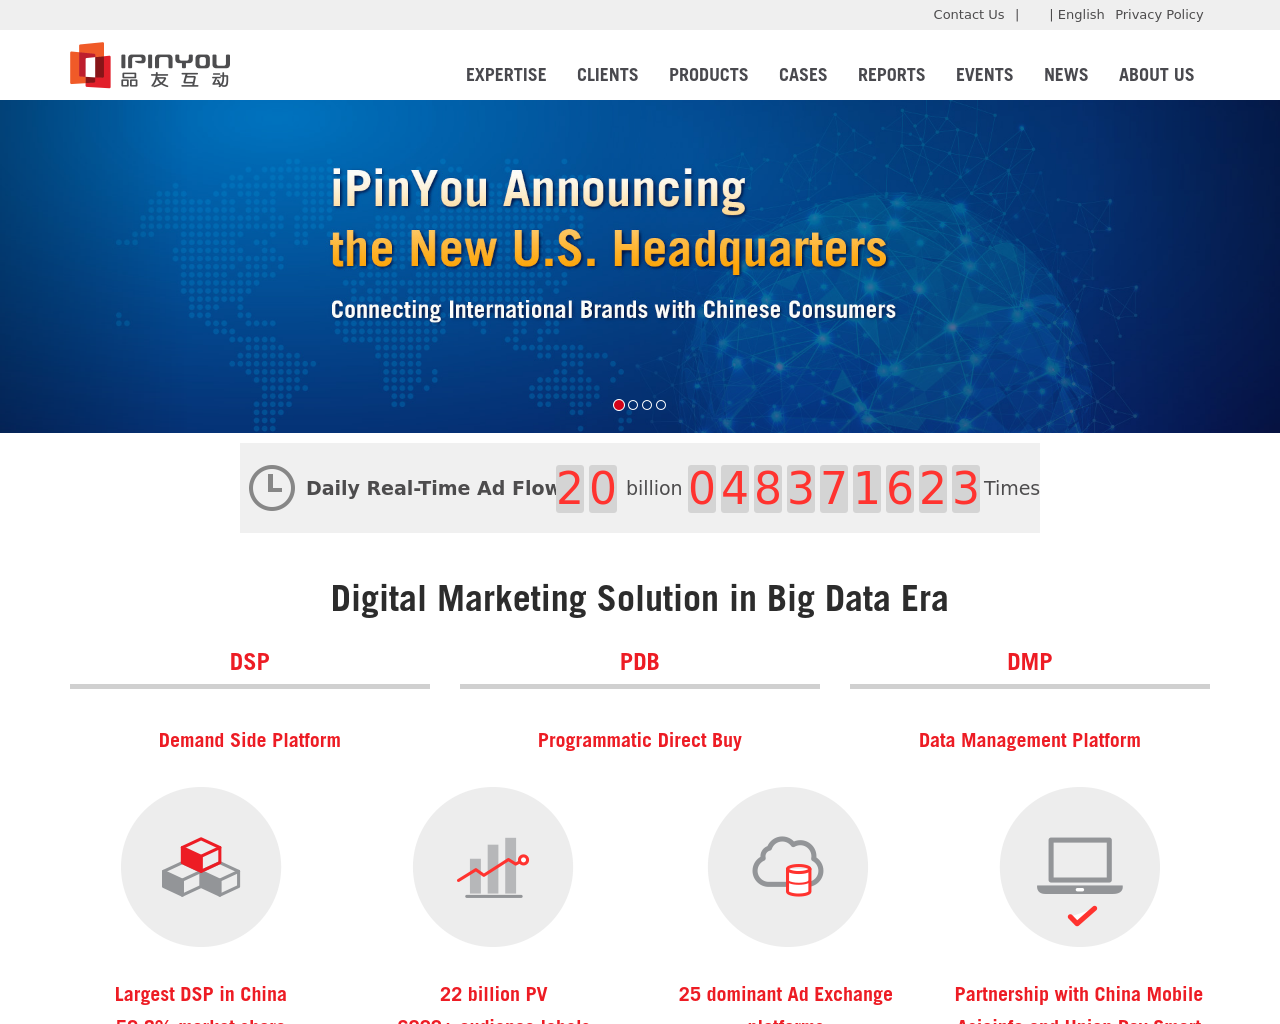 iPinYou-Advertising-Reviews-Pricing